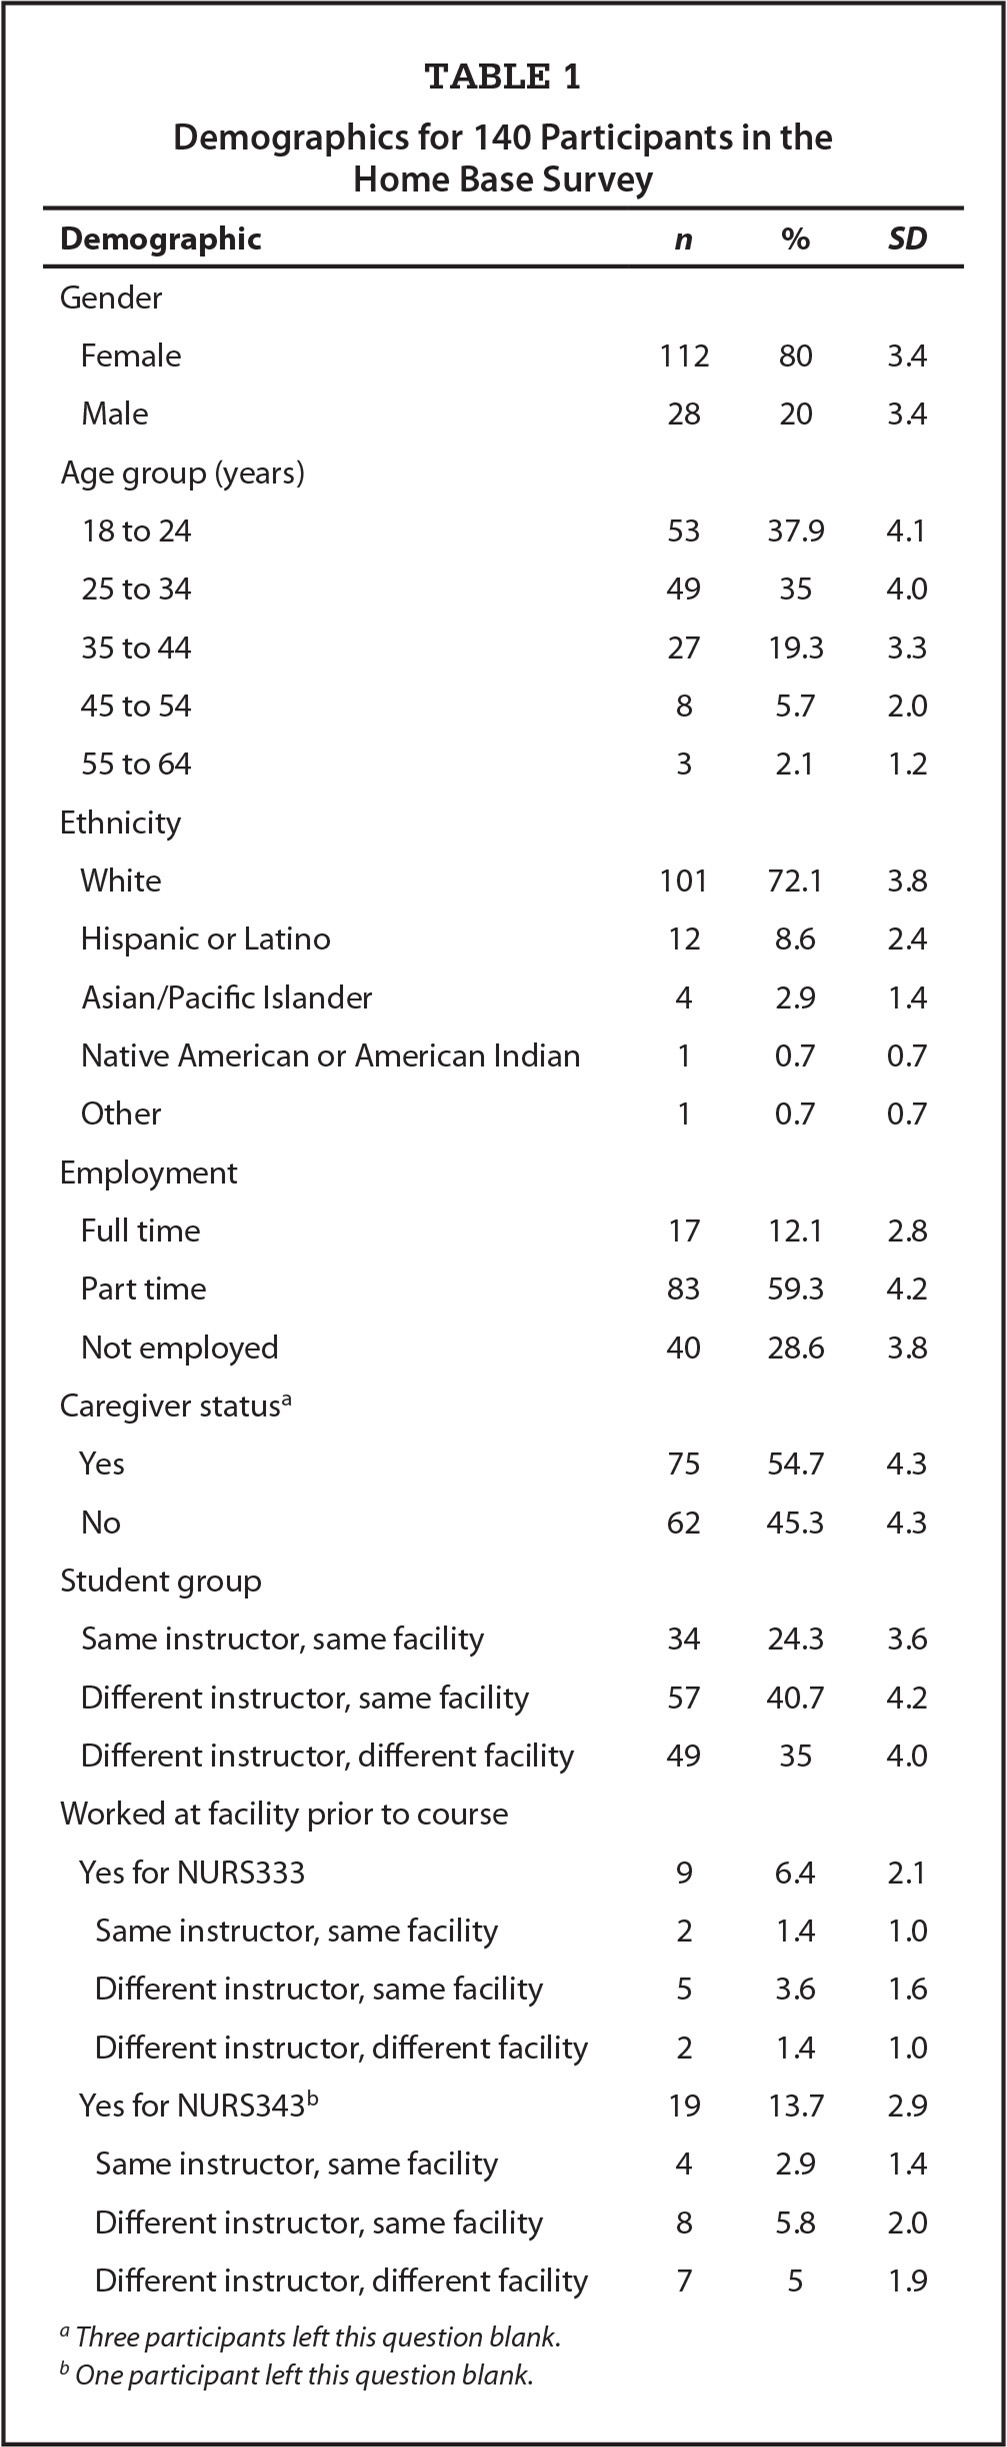 Demographics for 140 Participants in the Home Base Survey